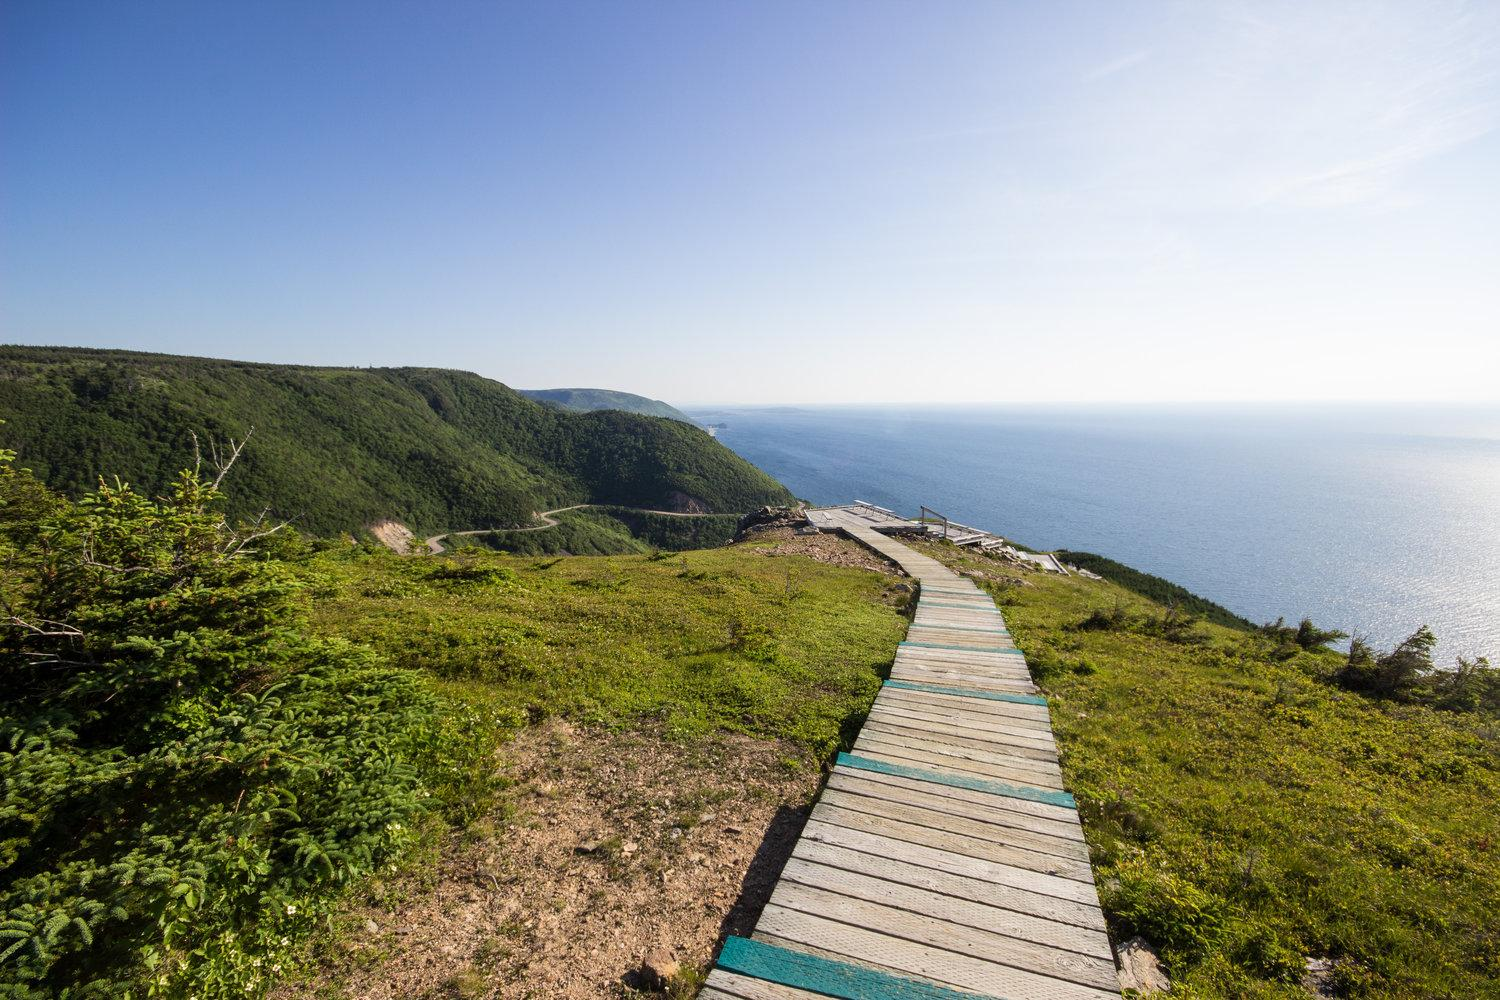 Hike the wild coastline and explore quaint Acadian villages of Nova Scotia's Cape Breton